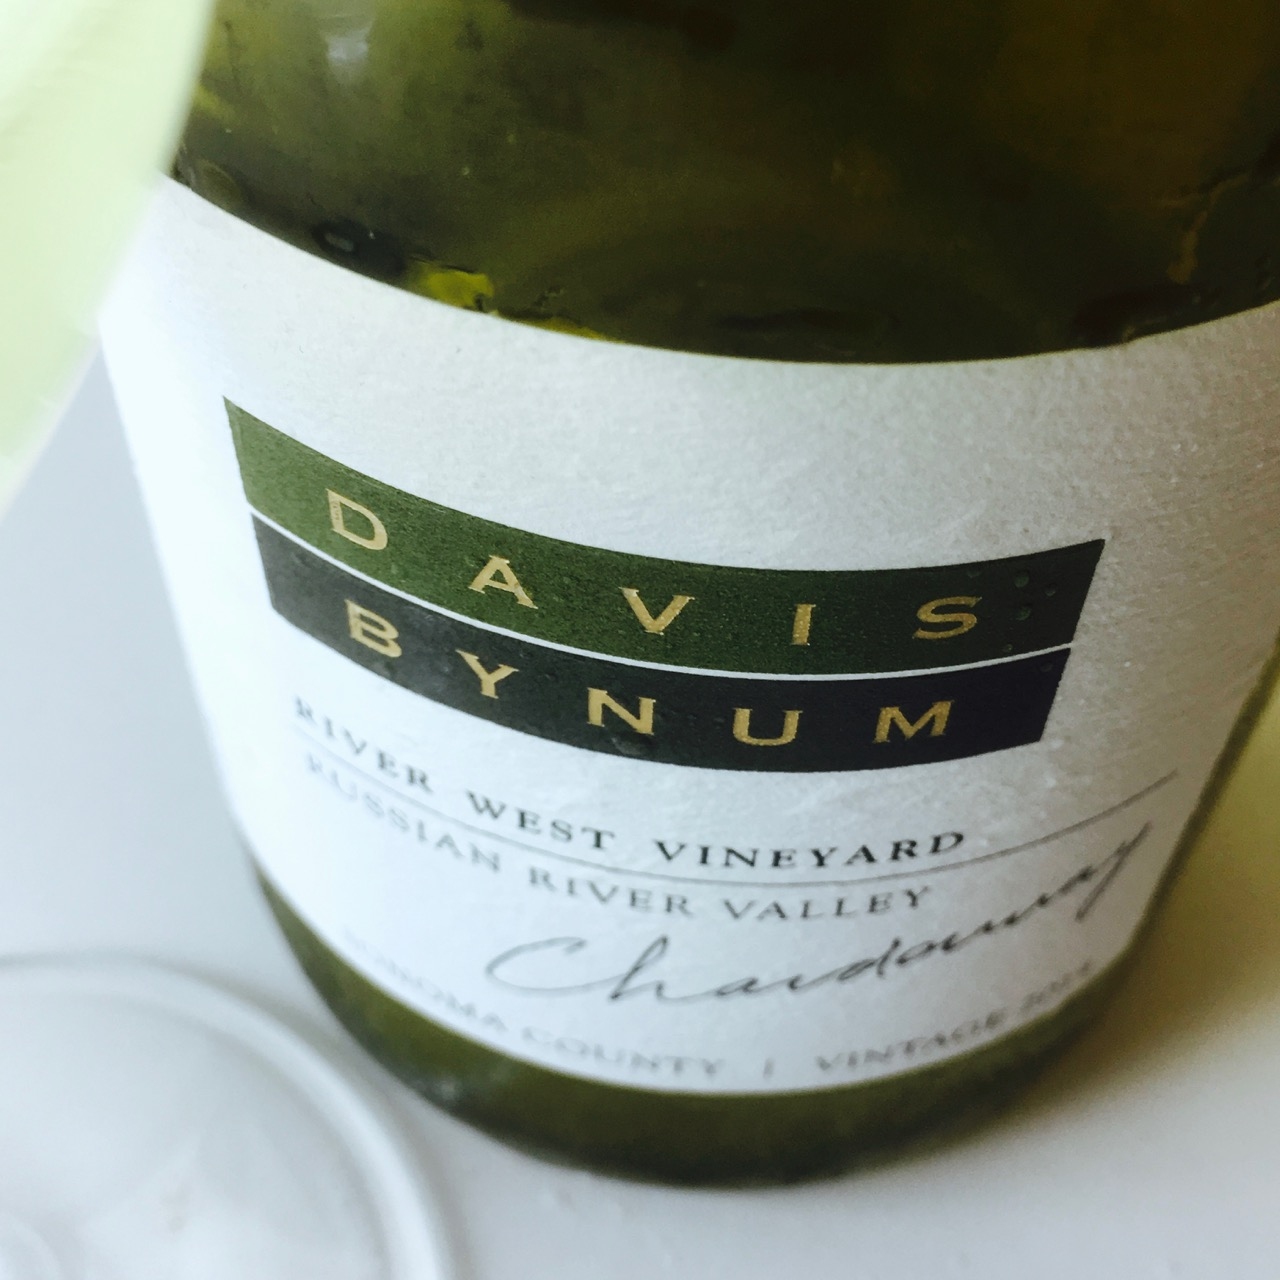 2014 Davis Bynum Chardonnay River West Vineyard Russian River Valley, Sonoma County